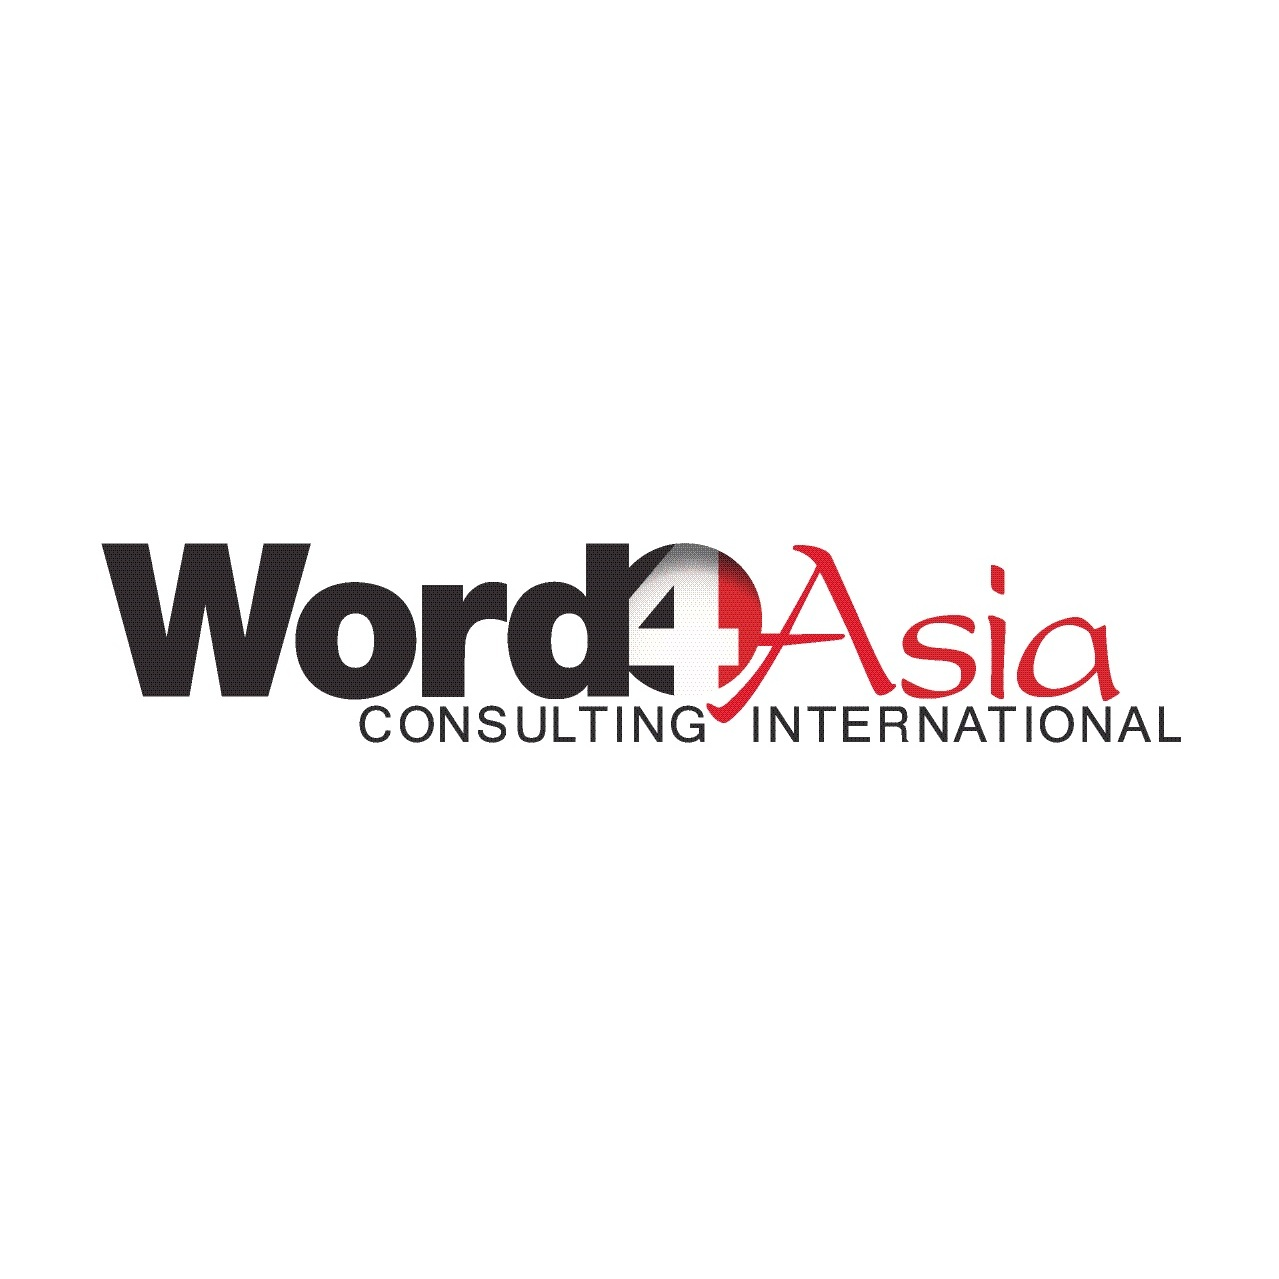 Word4Asia Consulting International